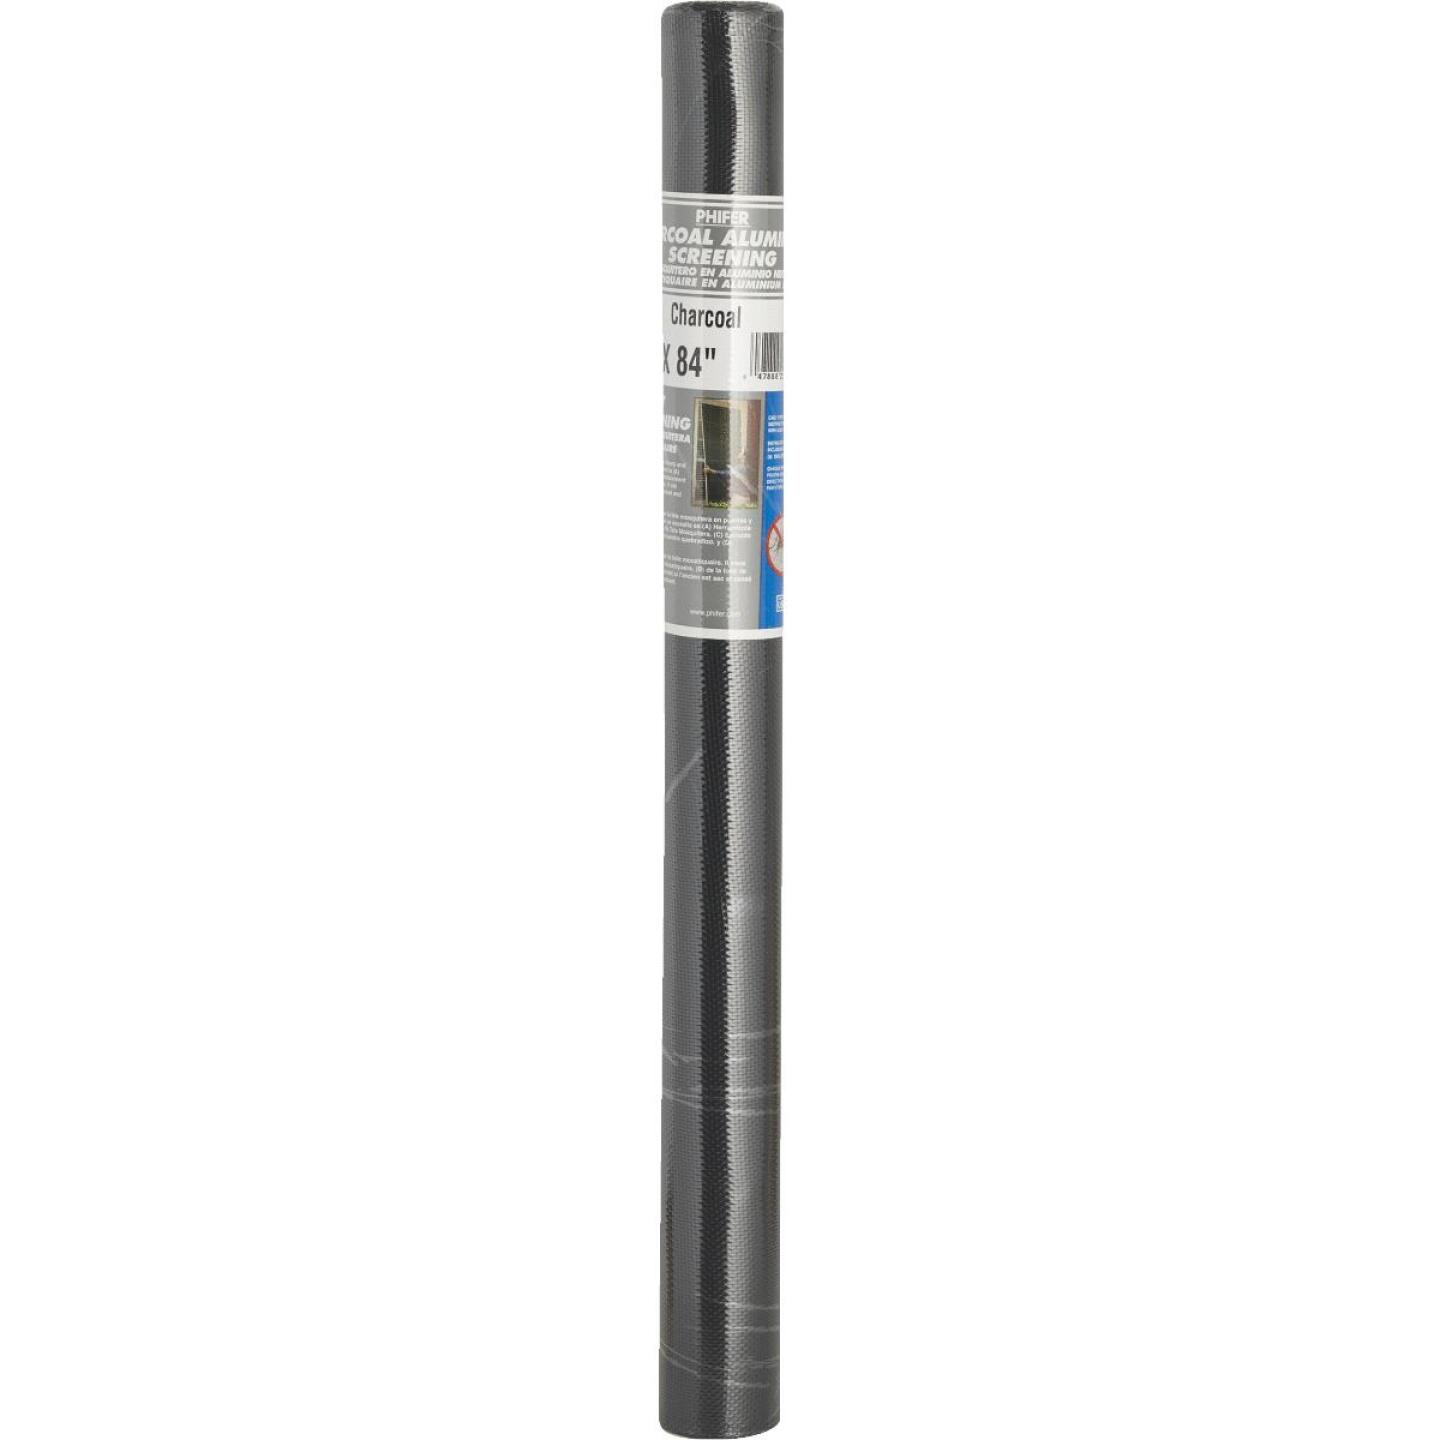 Phifer 24 In. x 84 In. Charcoal Aluminum Screen Ready Rolls Image 3